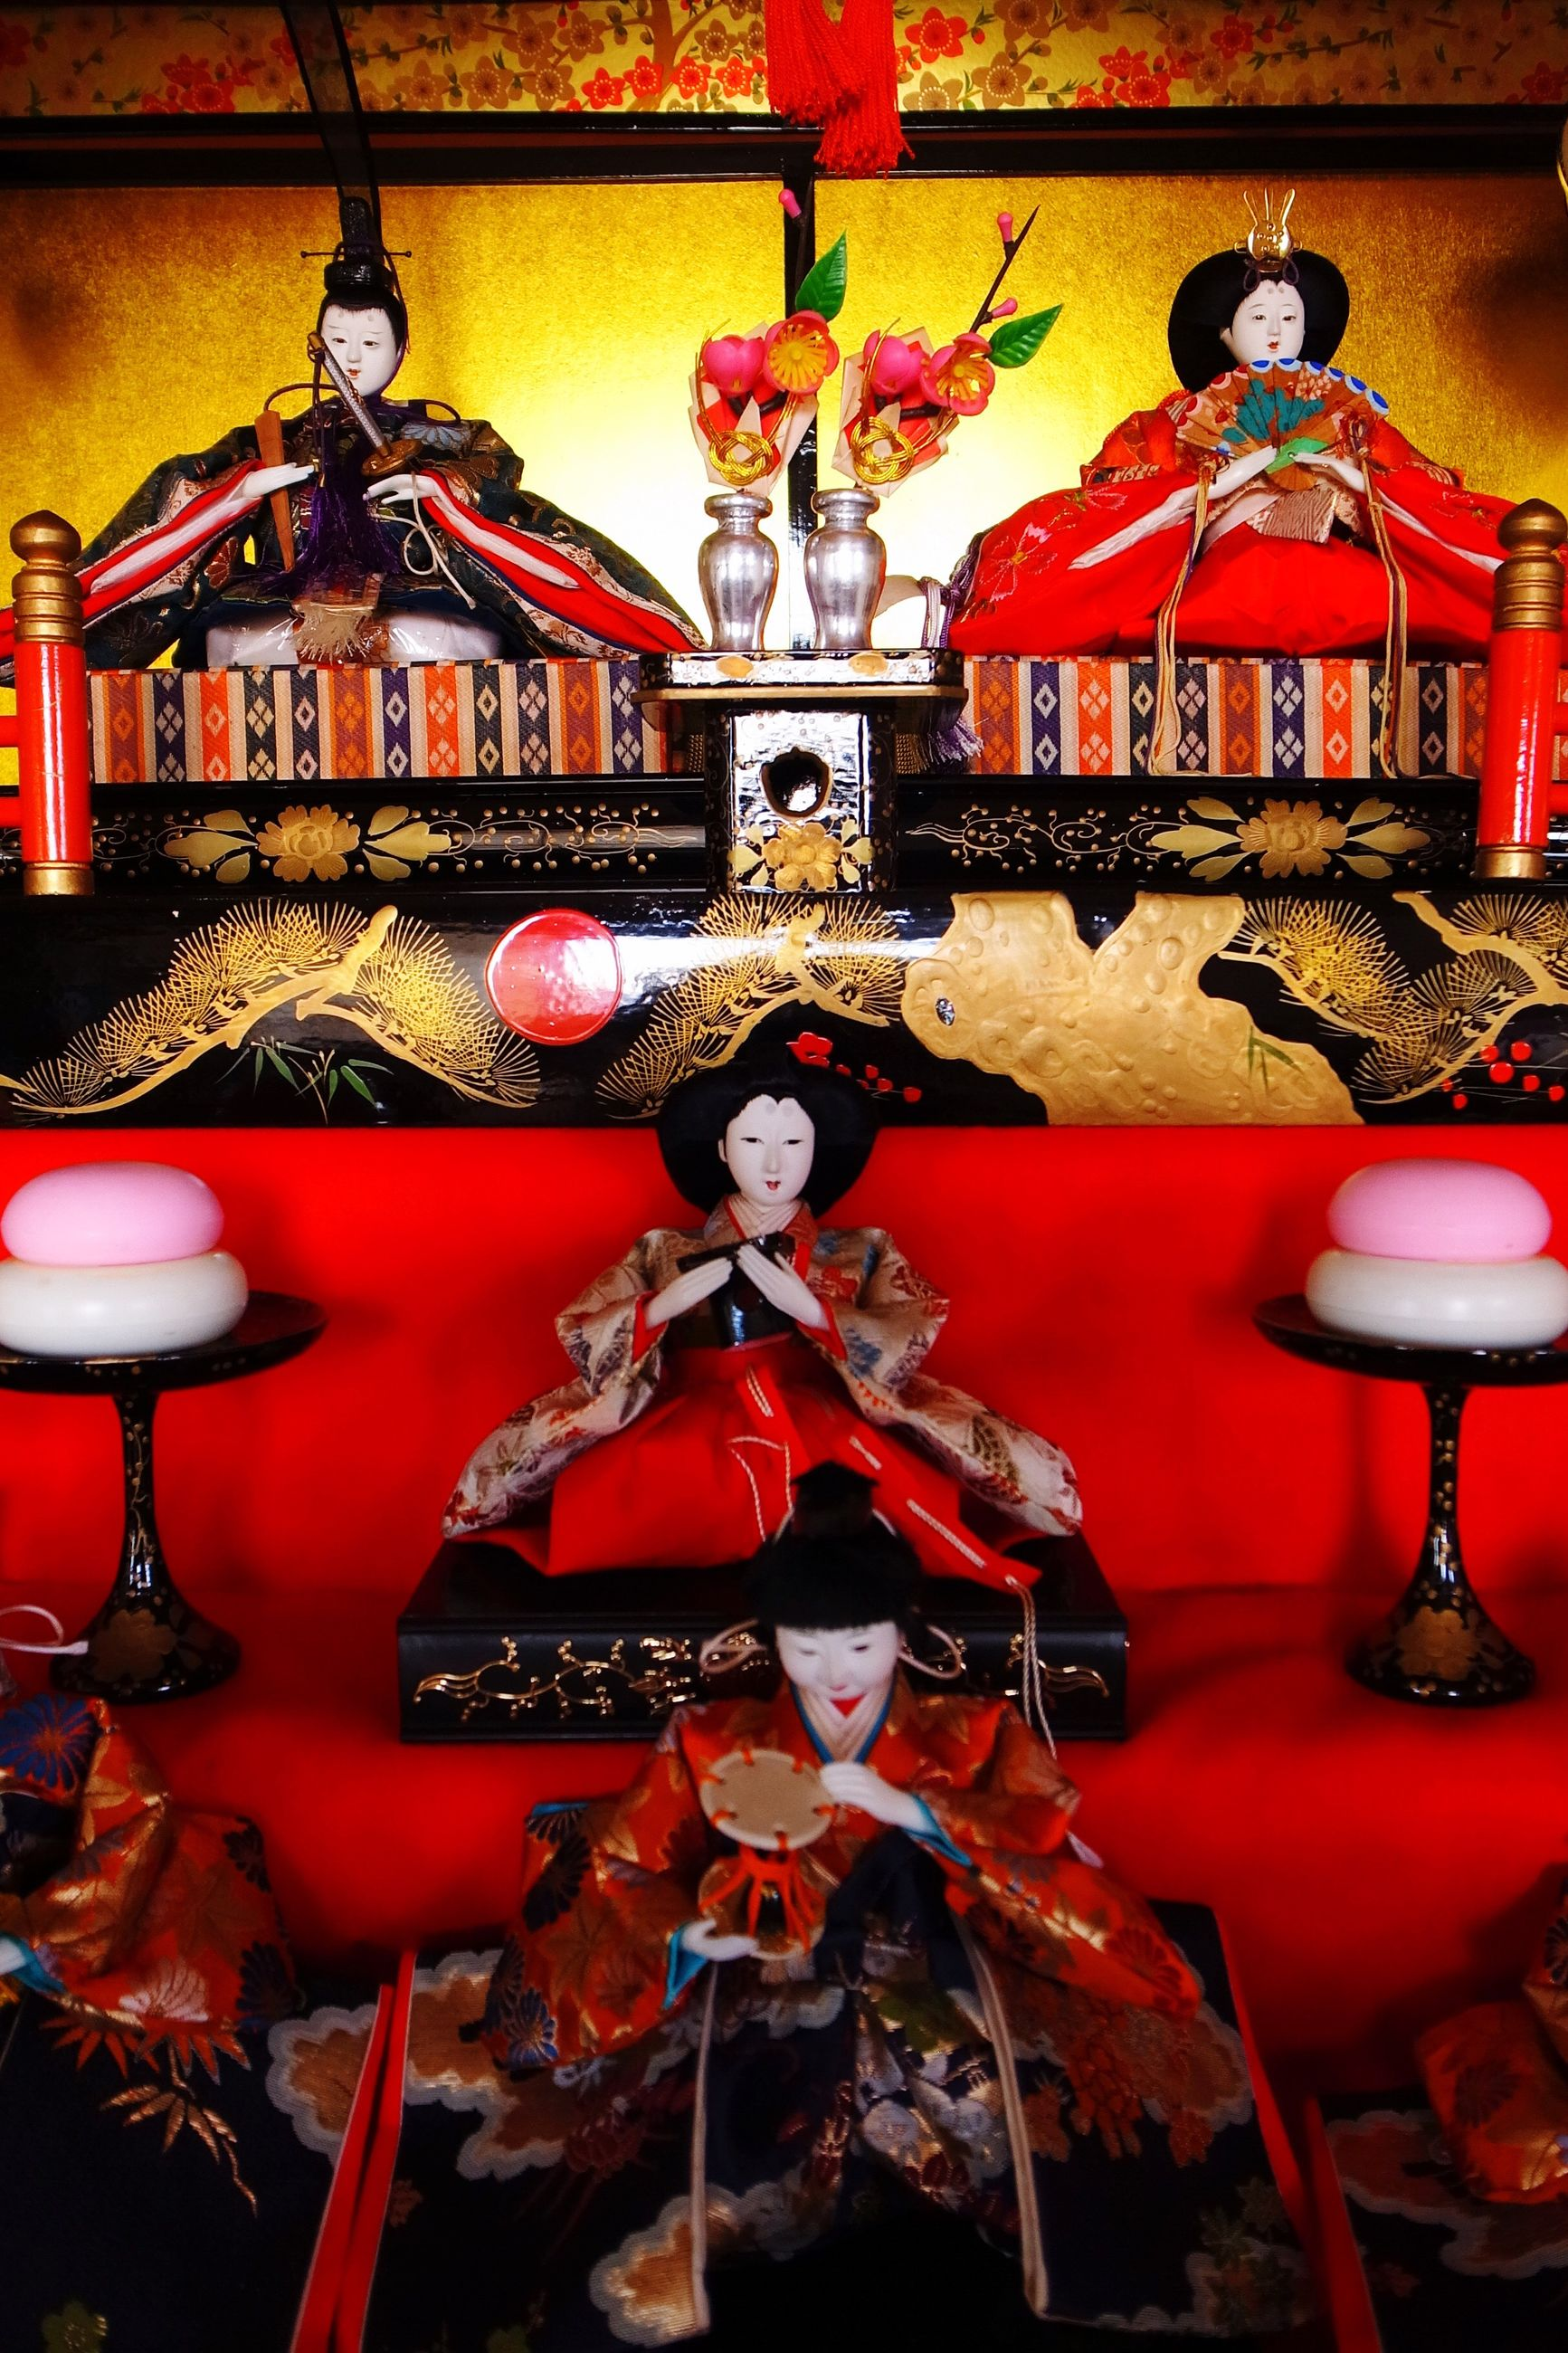 religion, spirituality, decoration, red, hanging, illuminated, indoors, place of worship, tradition, lantern, lighting equipment, ornate, cultures, built structure, architecture, art and craft, art, temple - building, decor